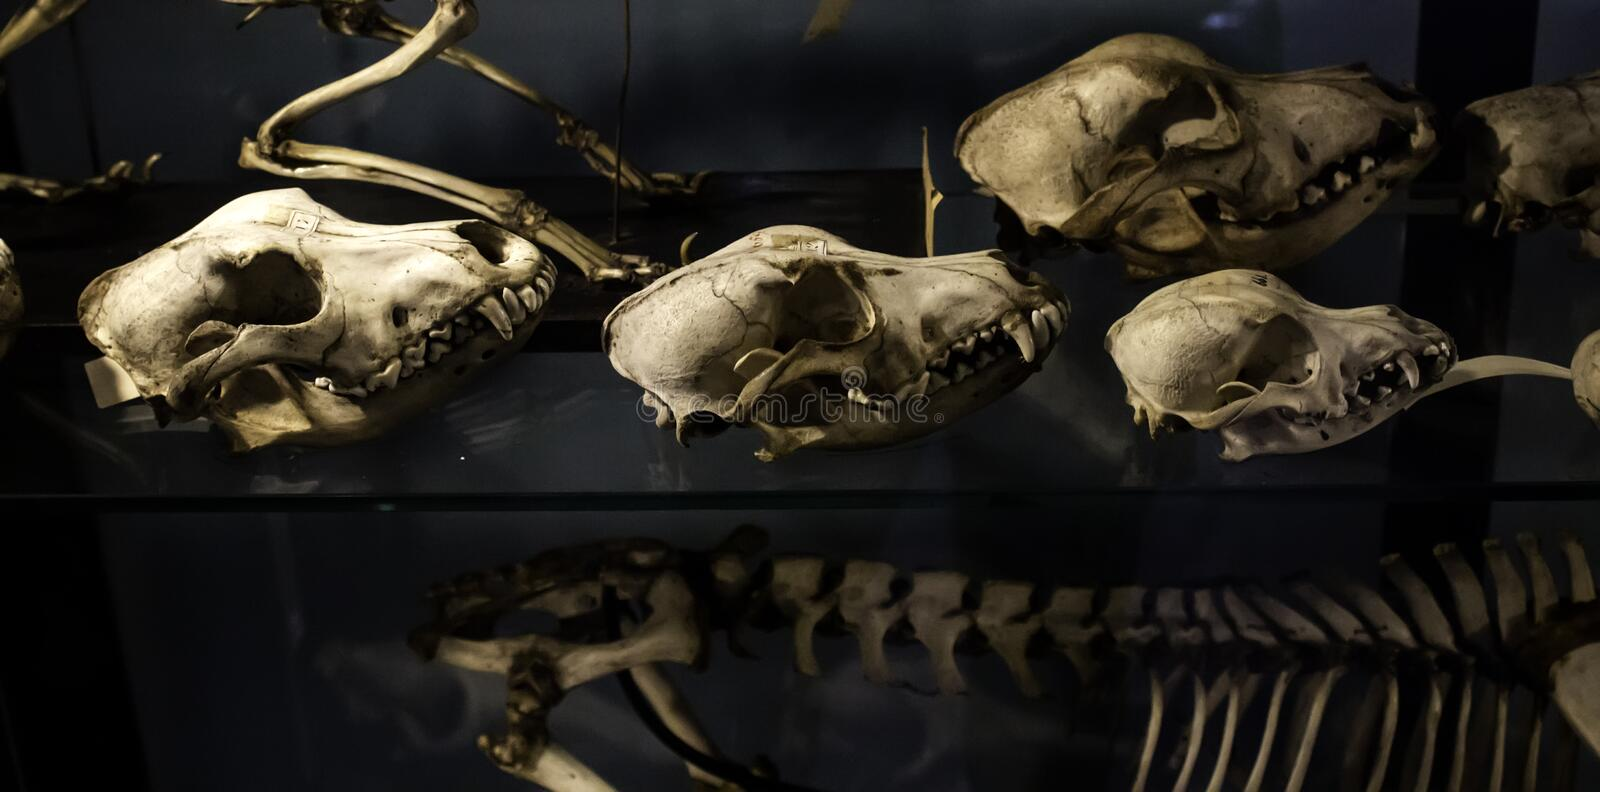 Mammal skeletons anatomy. Mammal skeletons in anatomy laboratory, animals and symbols, diagnosis, physiology, medical, canine, medicine, veterinary, artificial stock photo